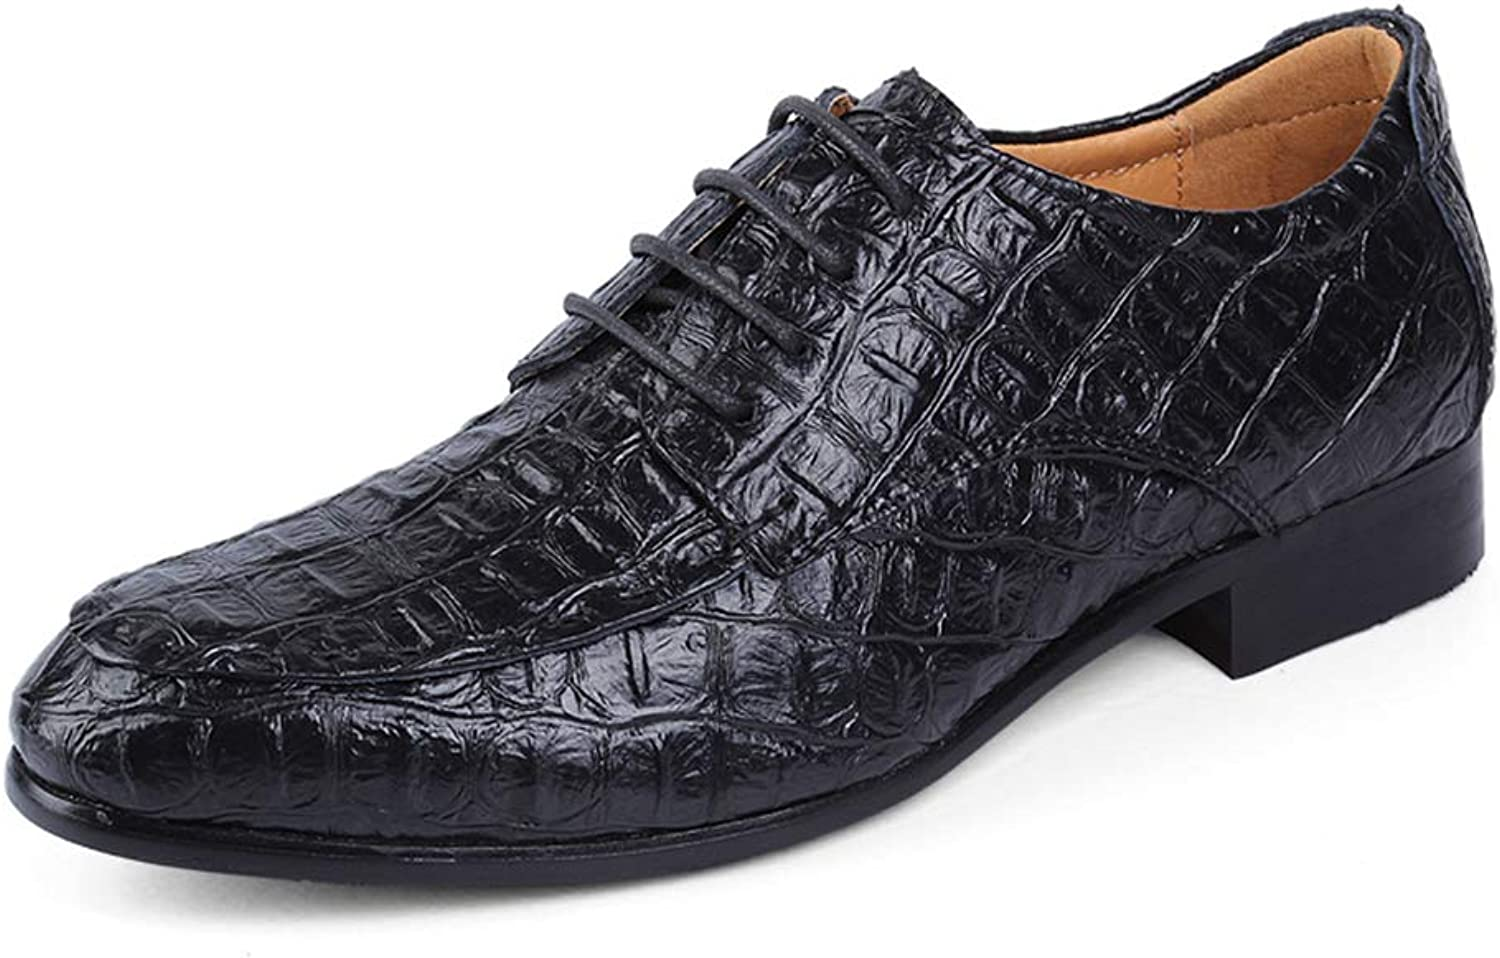 Men's shoes Casual Comfort Business shoes Flat Loafers Loafers & Slip-Ons for Work, Leisure,Going Out, Gatherings,B,39